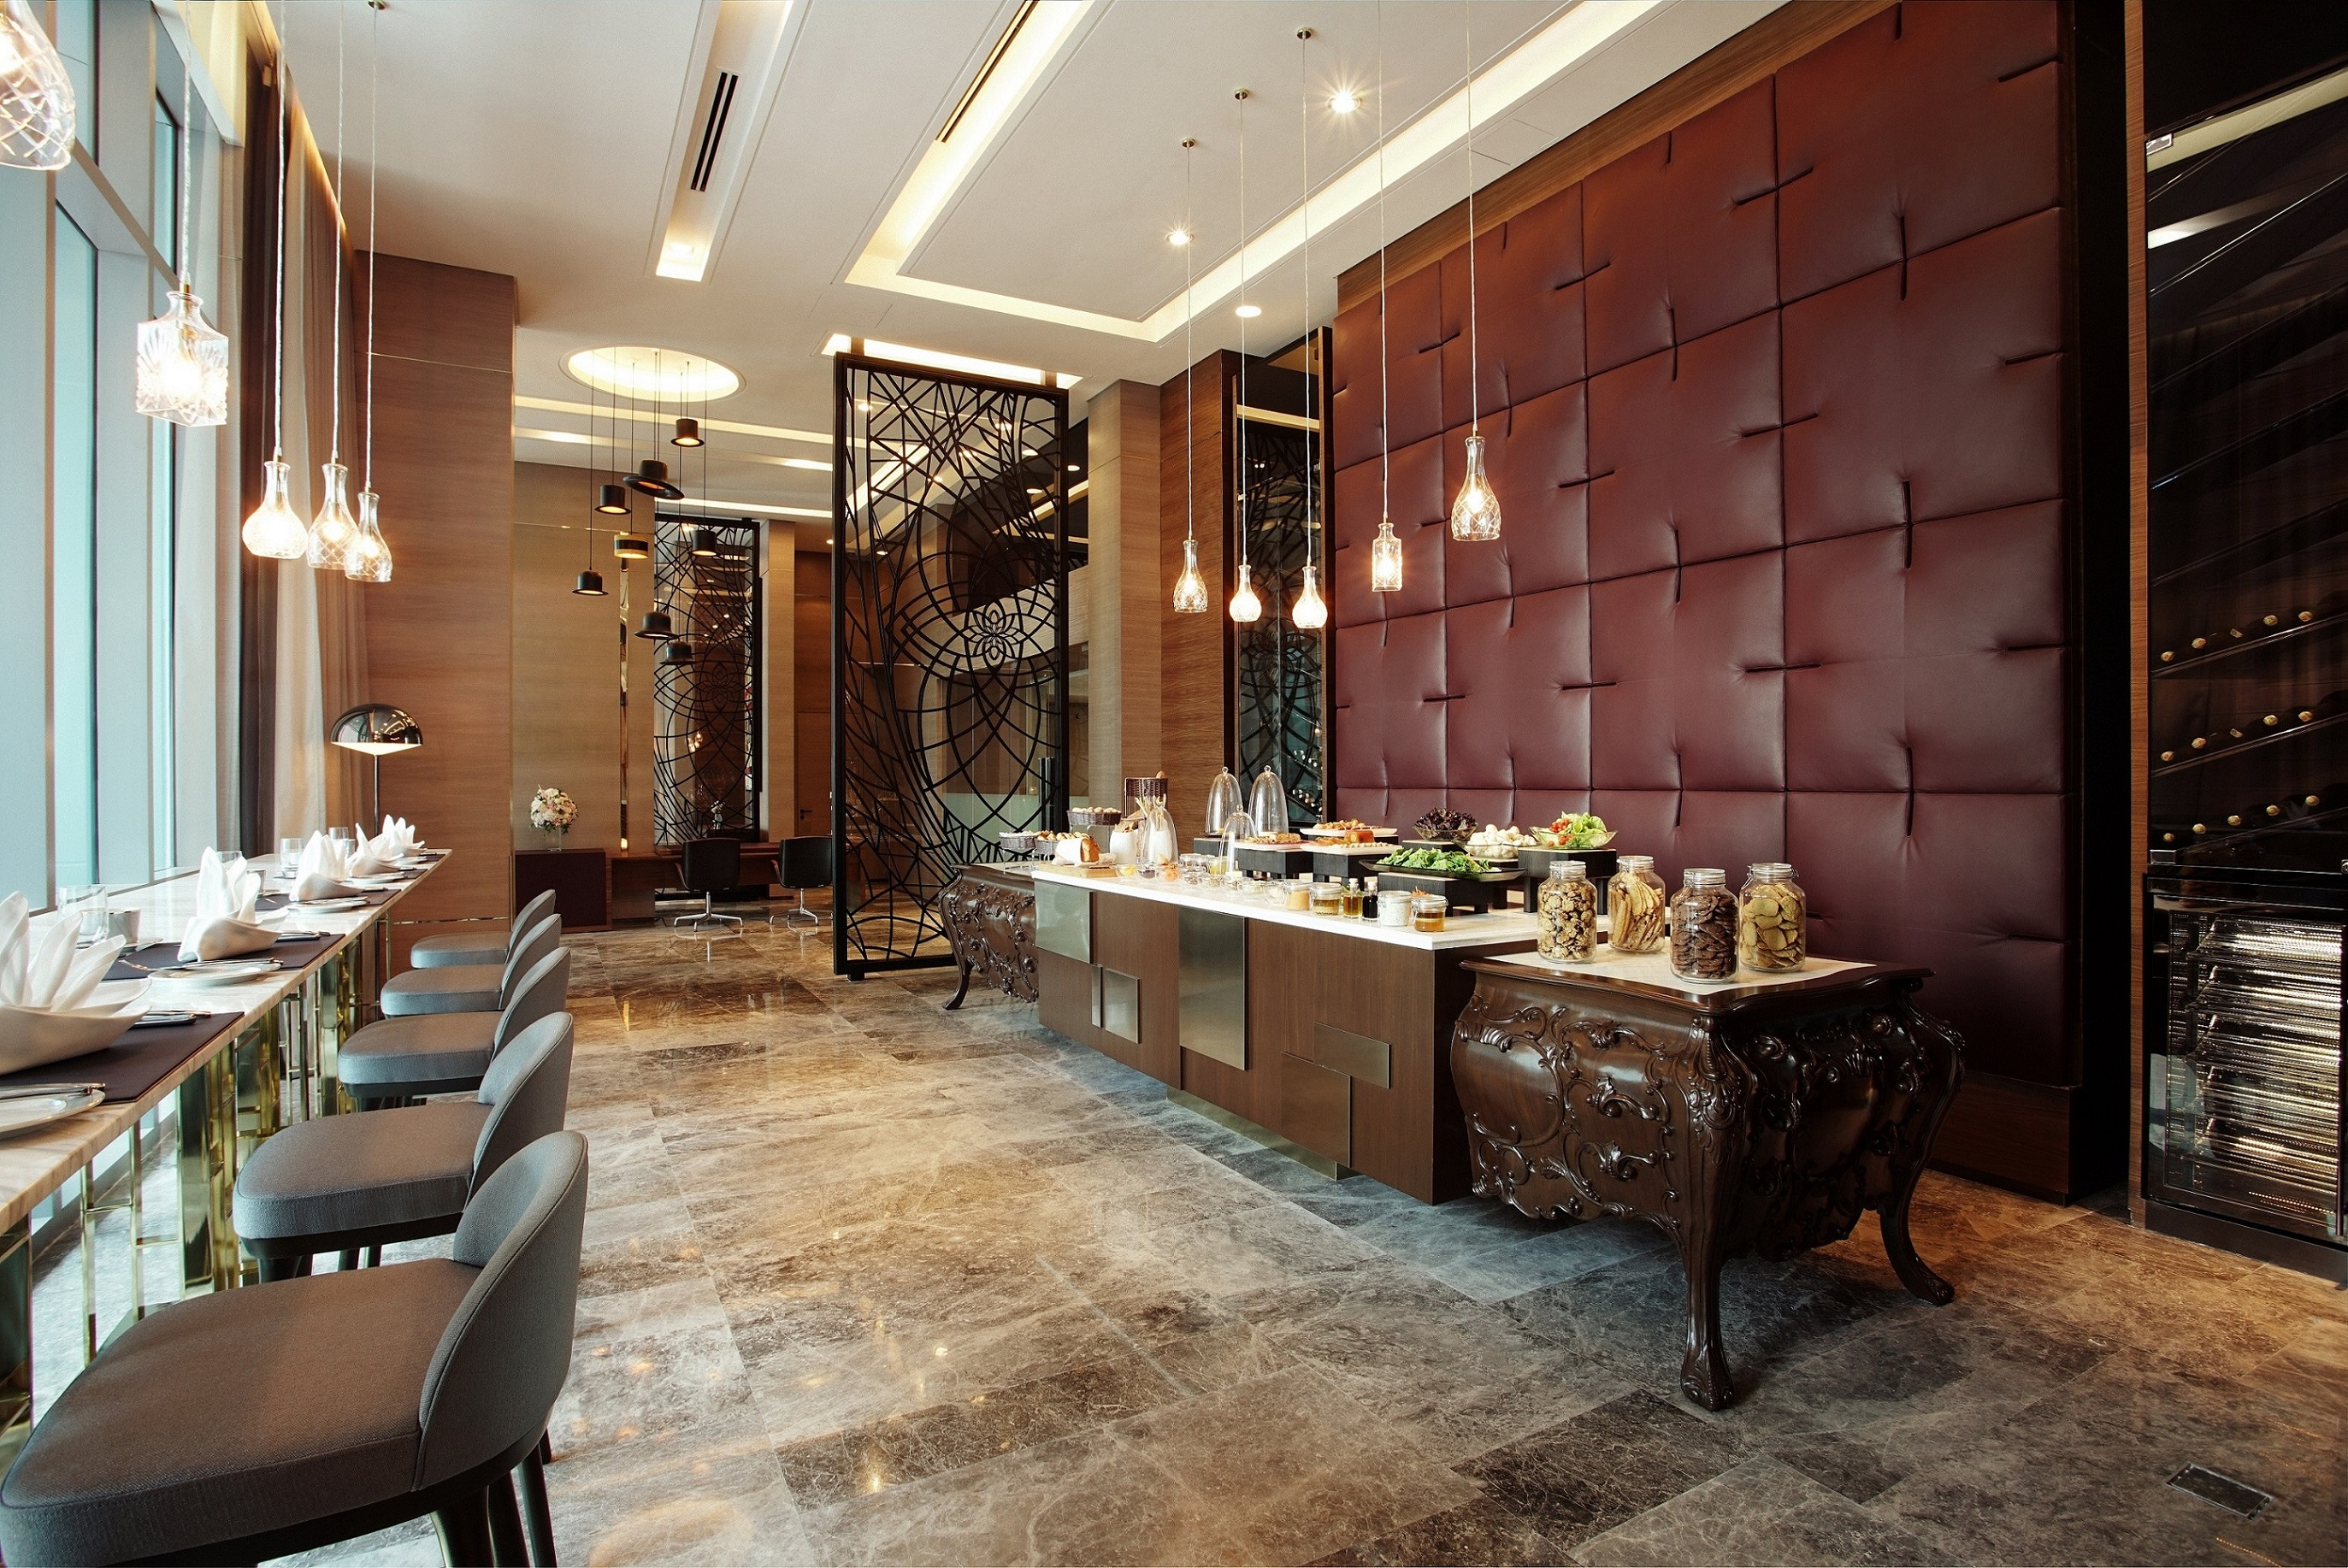 Check in: Sofitel Kuala Lumpur Damansara offers plush rooms and a gastronomic experience